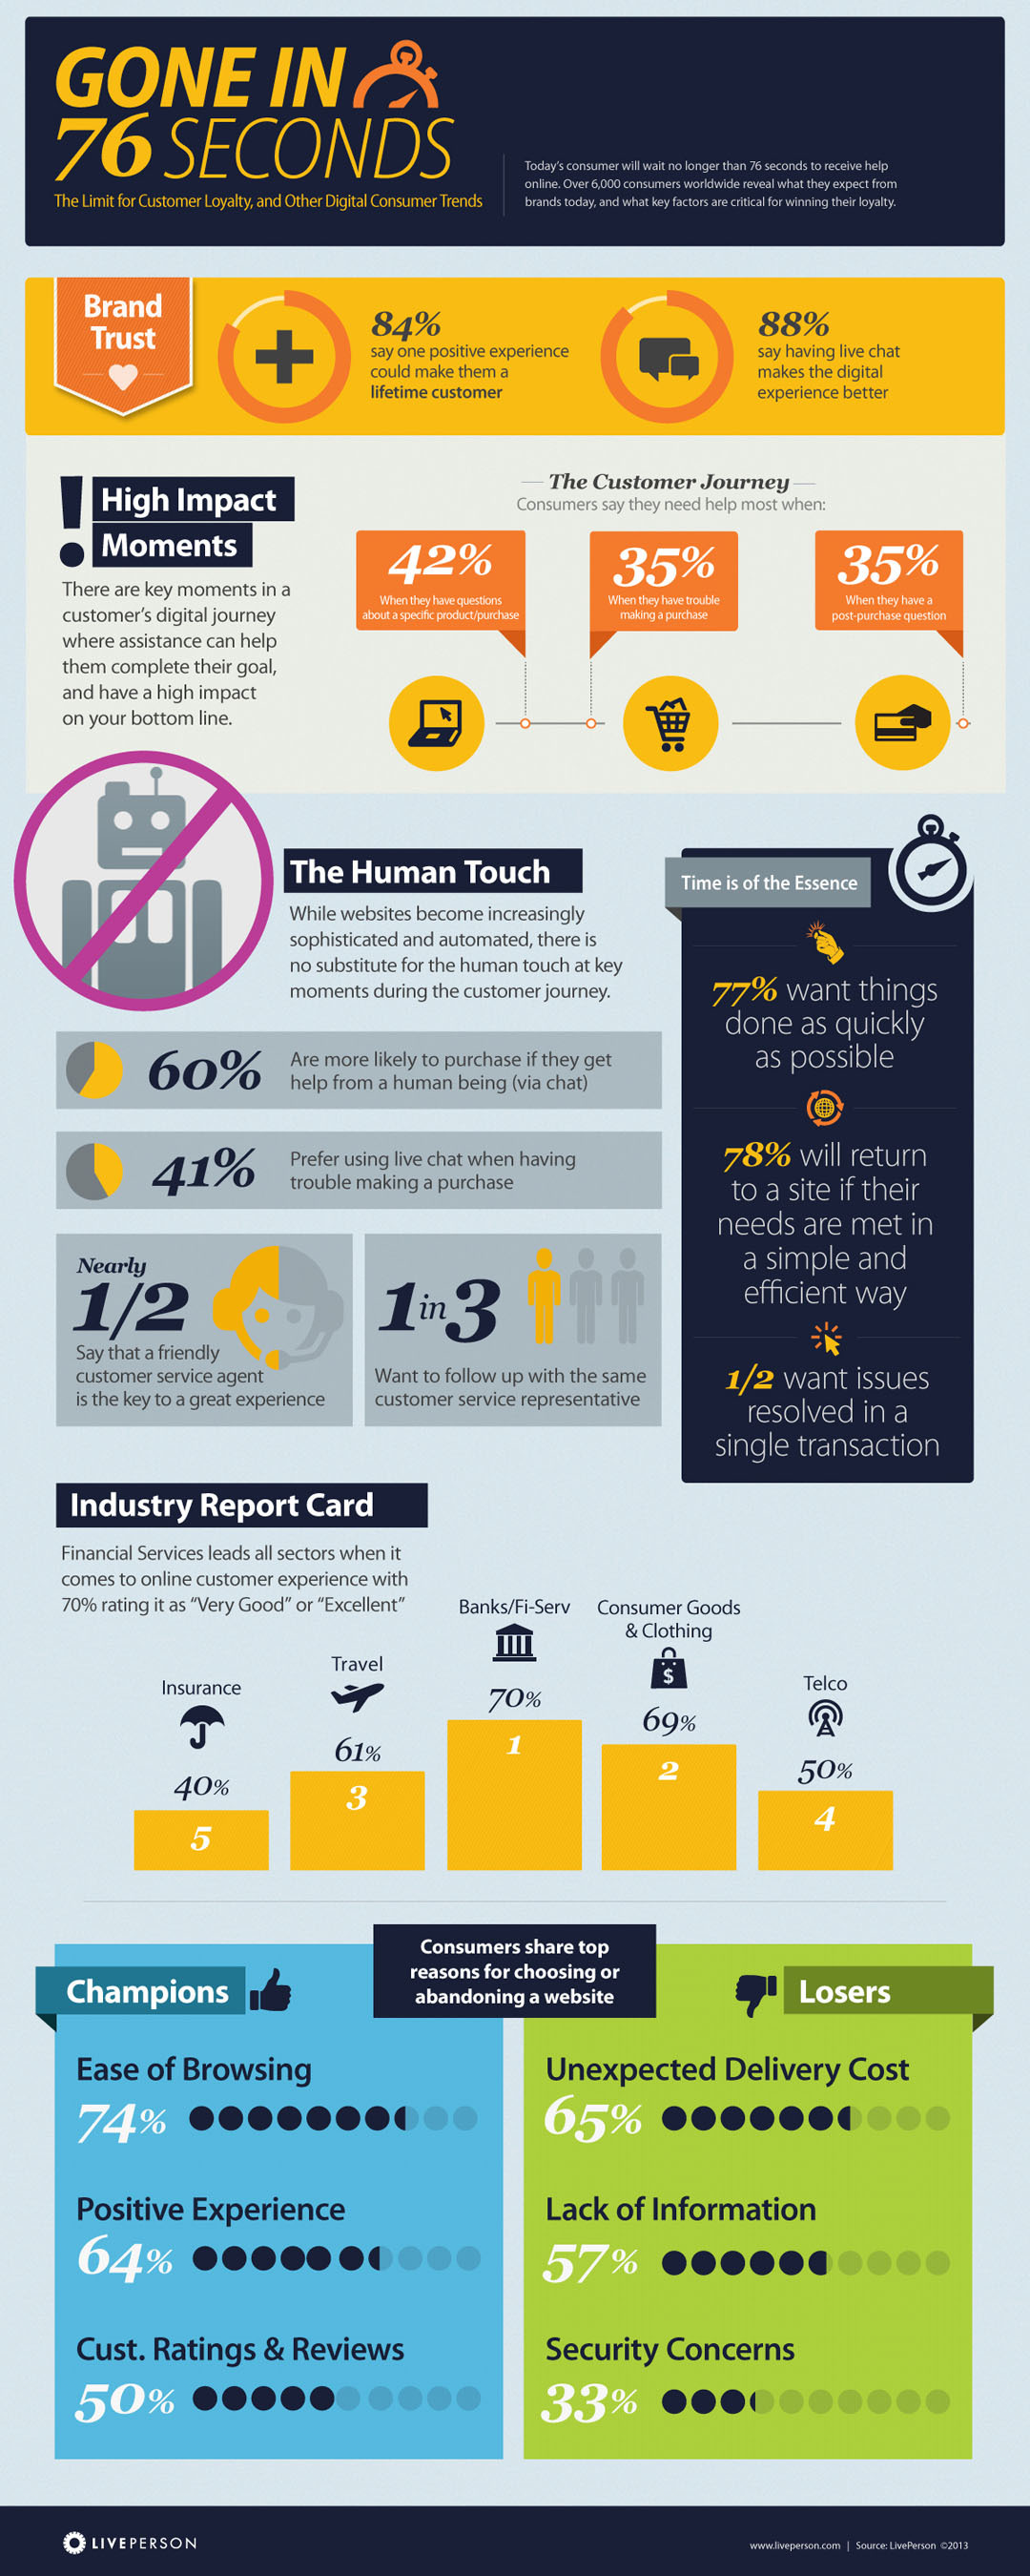 Gone in 76 -The limit for customer loyalty, and other digital consumer trends - Gone in 76 Seconds: Today's  ...